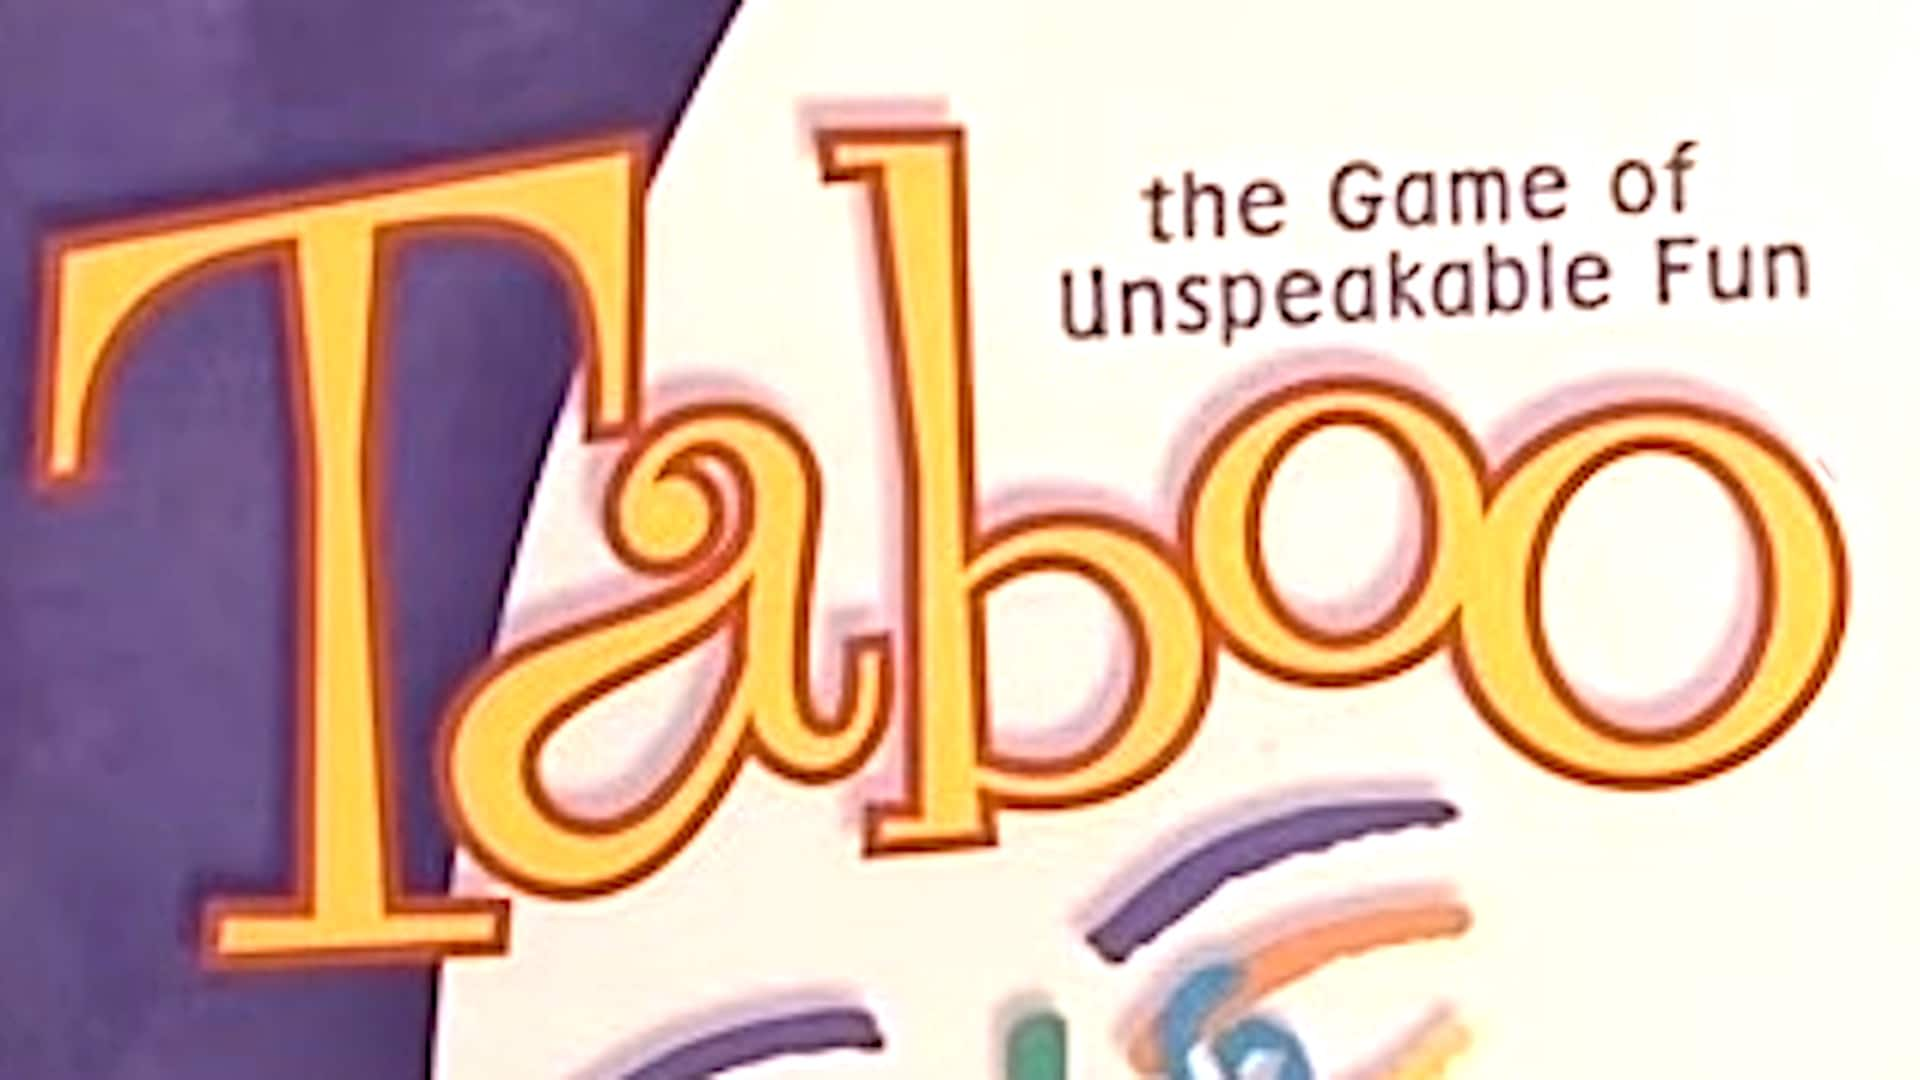 How to play Taboo?